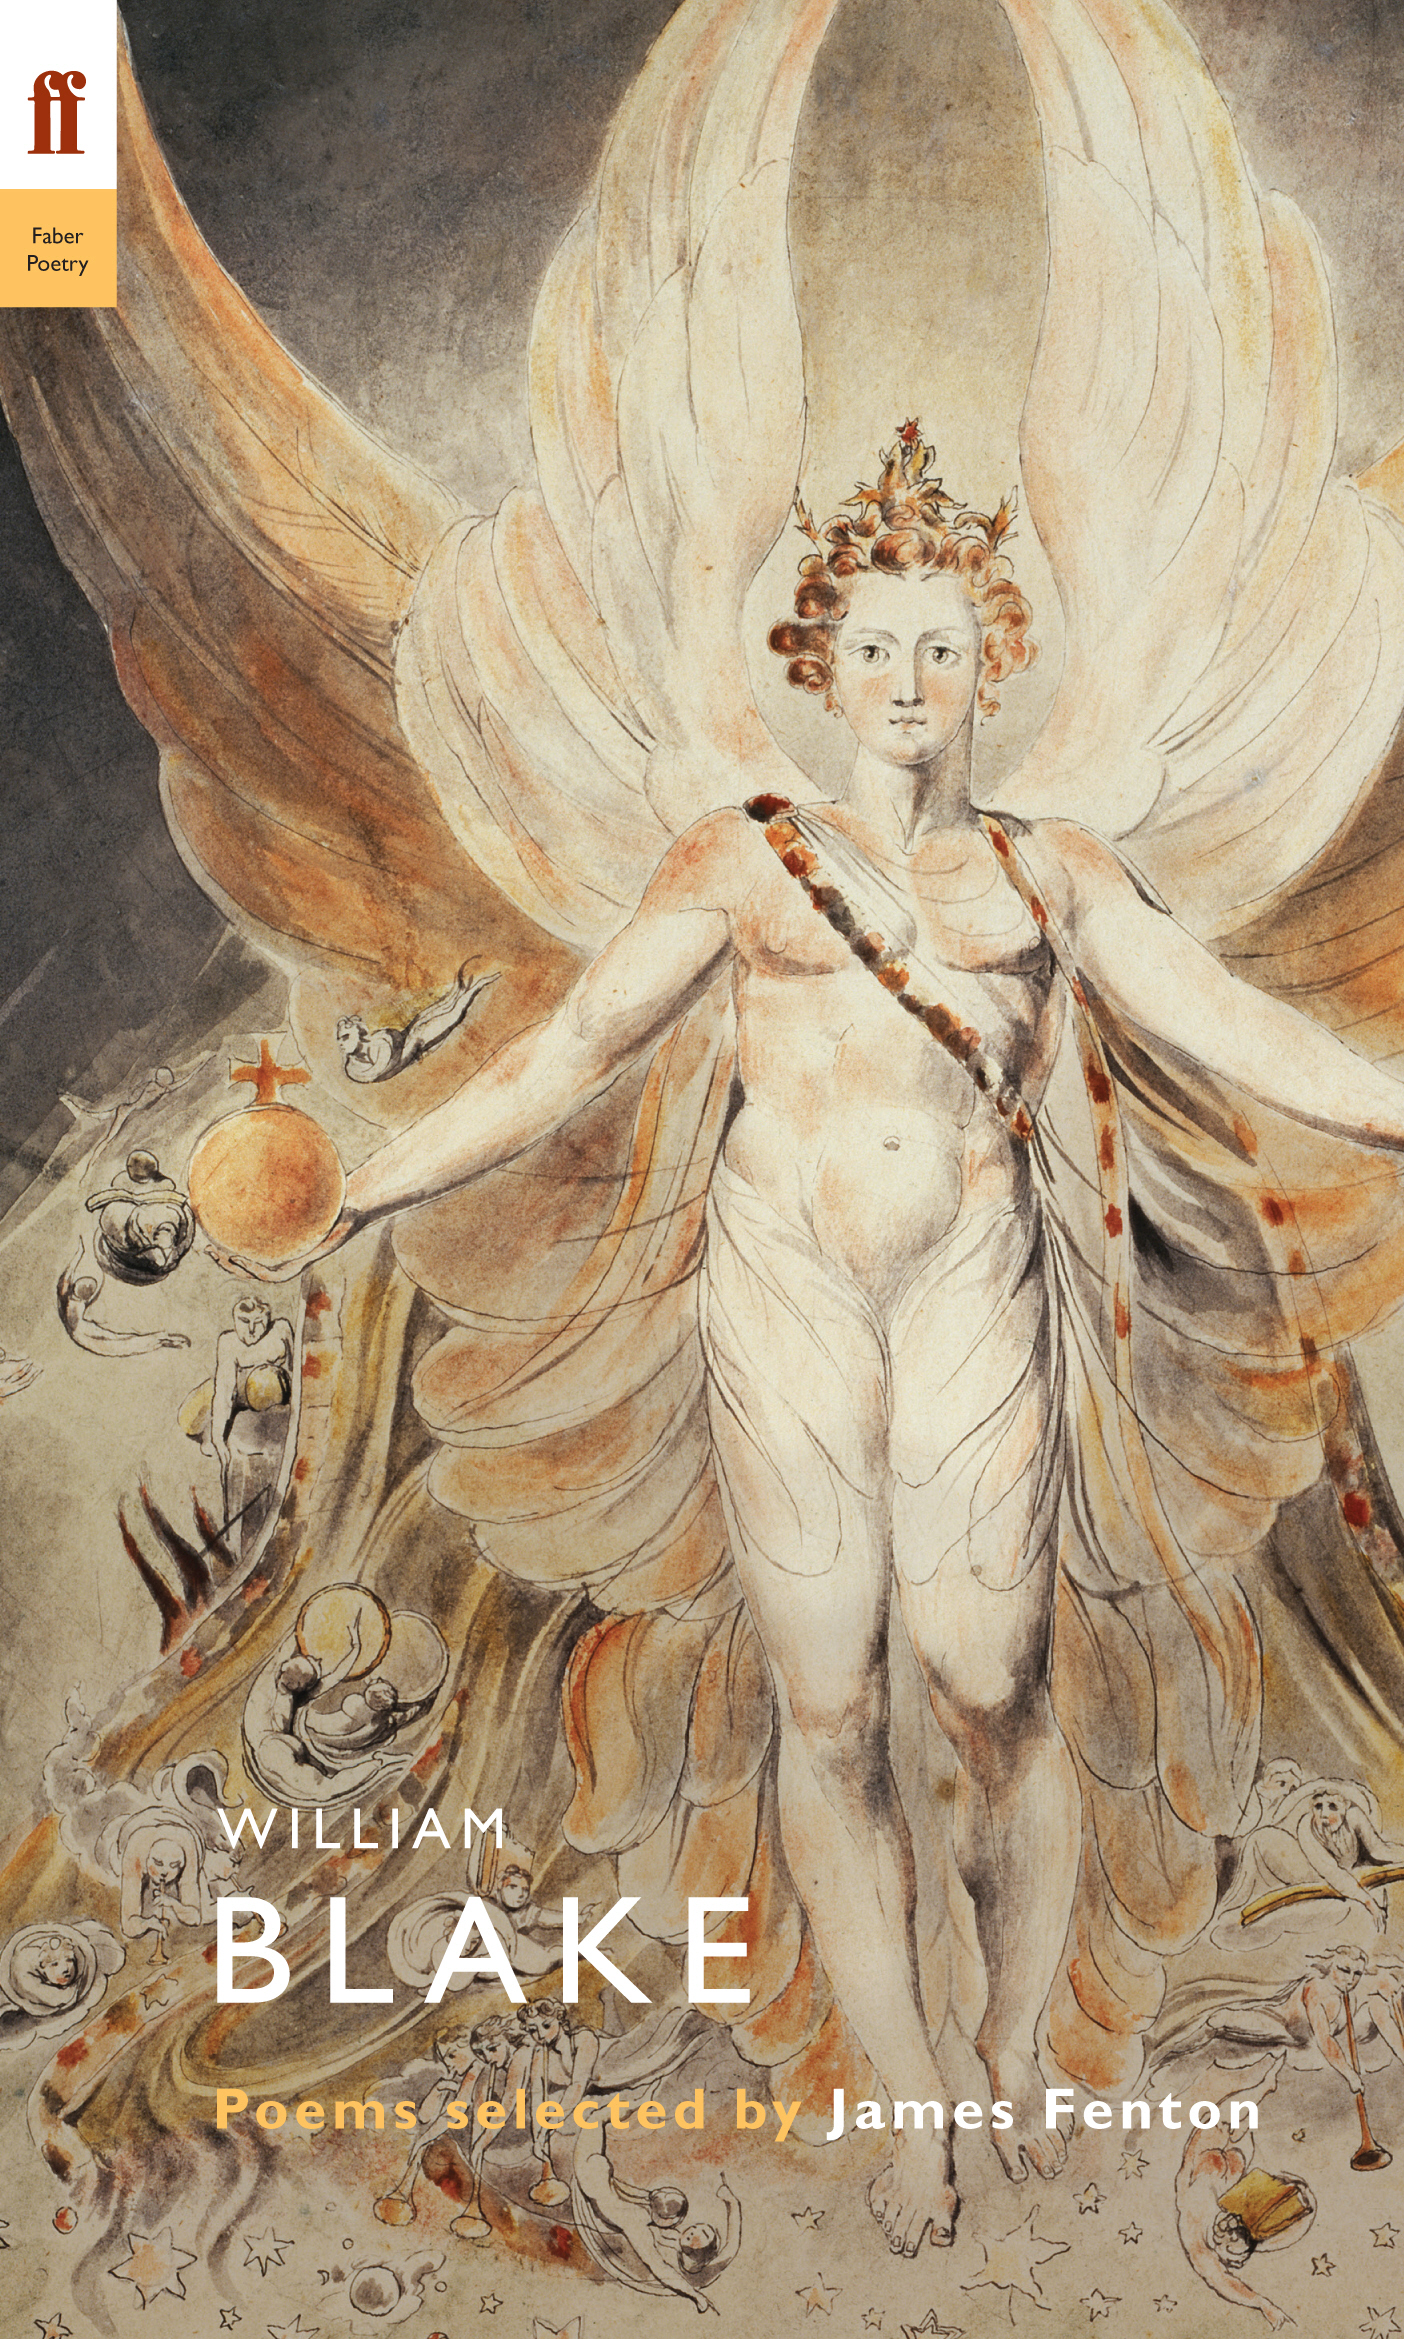 an introduction to the life and literature by william blake William blake was born in 1757 and was originally an engraver he began adding text to his engravings in the form of poems and he was interested as much in the presentation of poems as the poems.